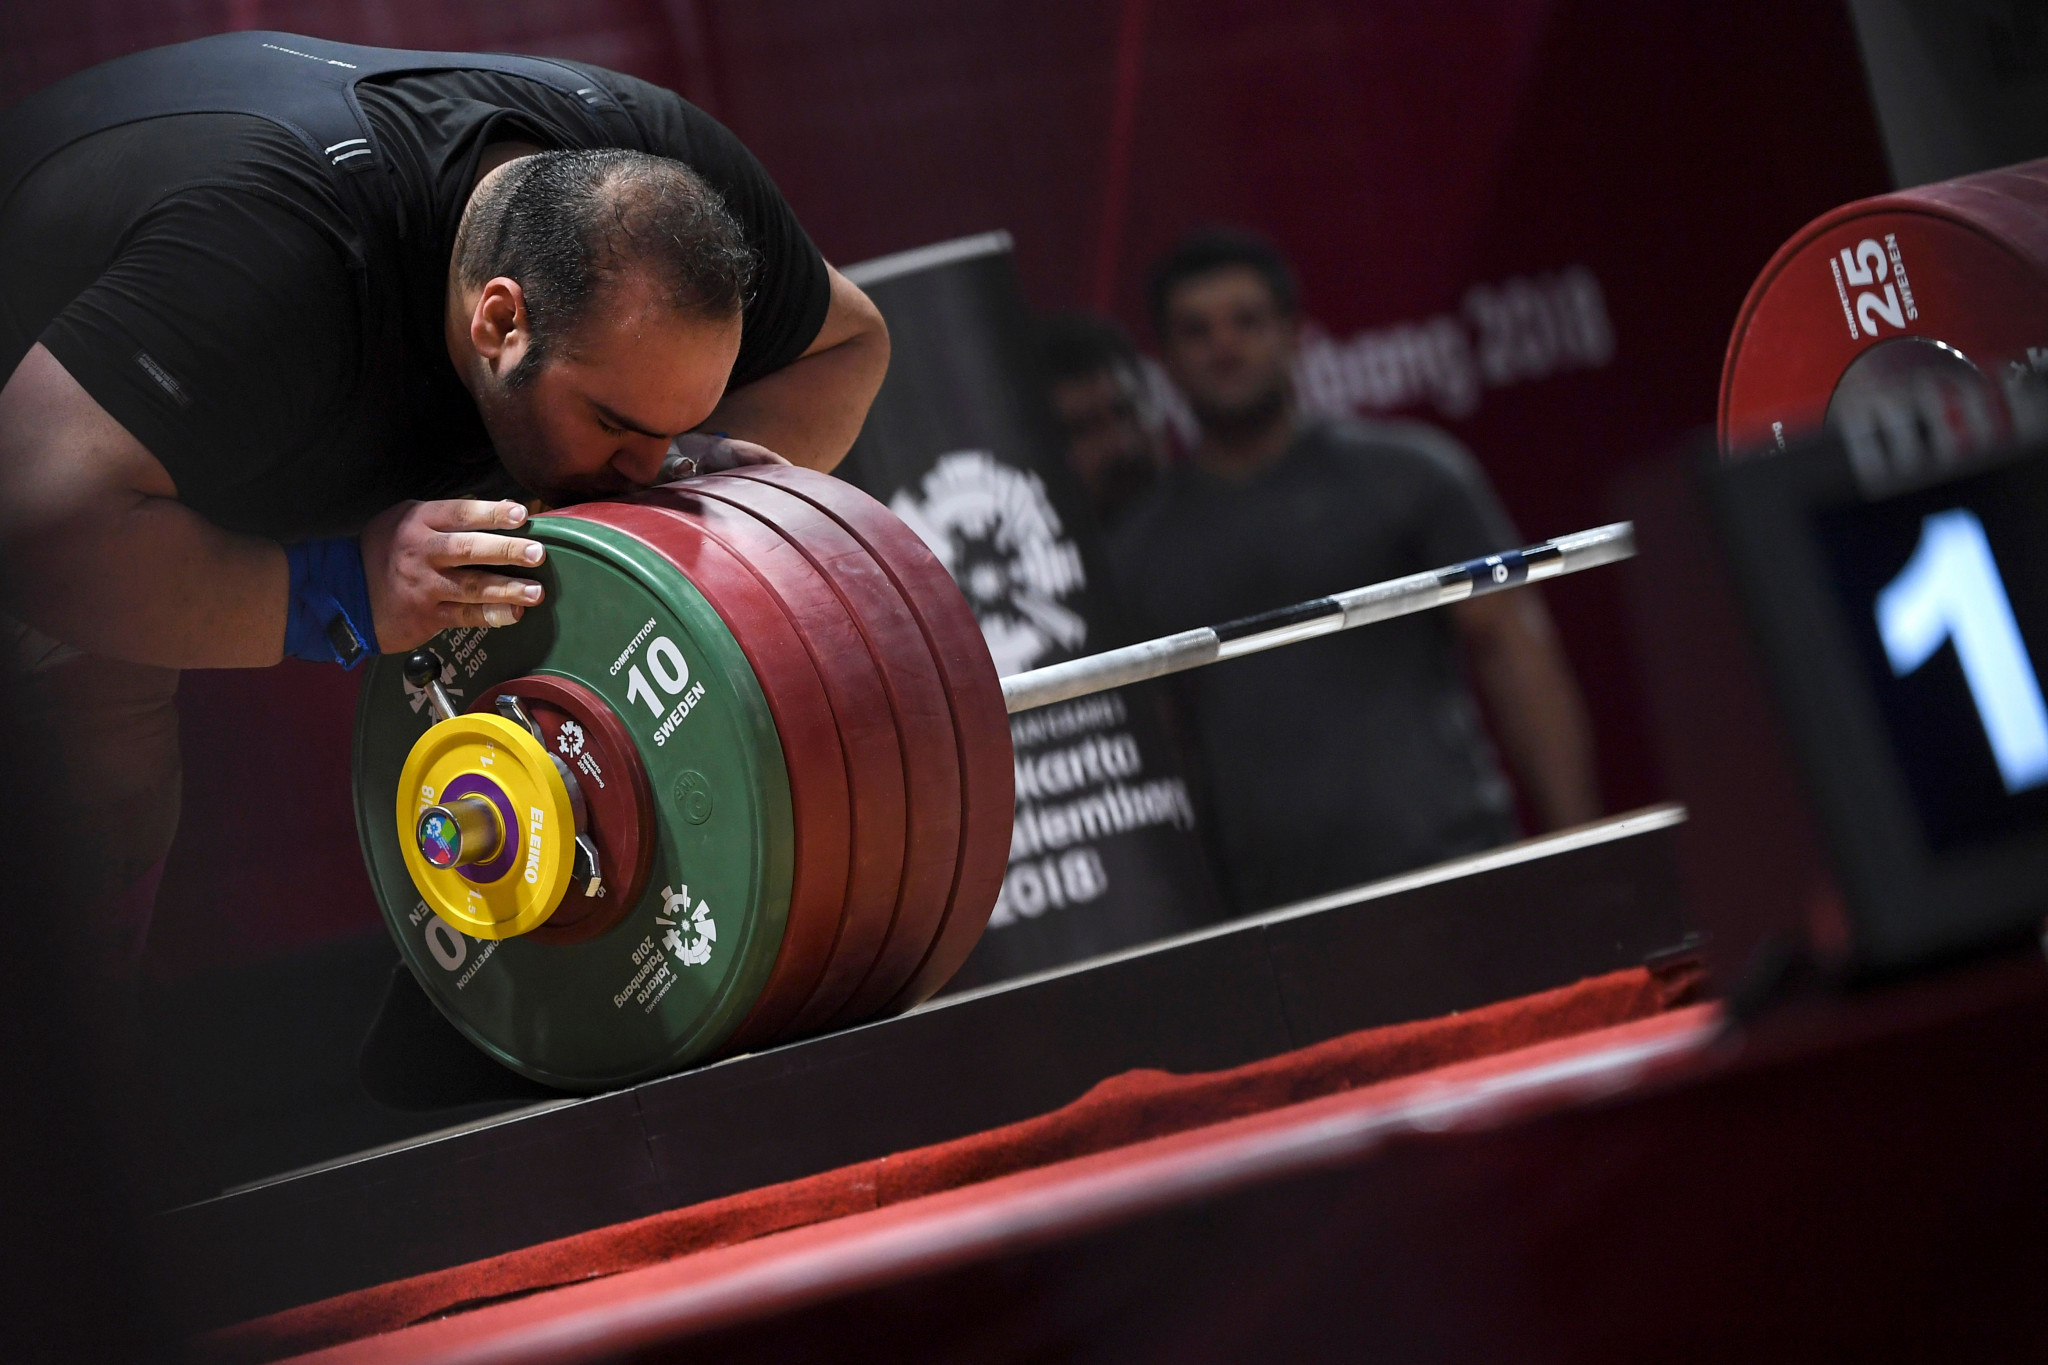 Iranian weightlifter Behdad Salimikordasiabi has announced his retirement ©Getty Images